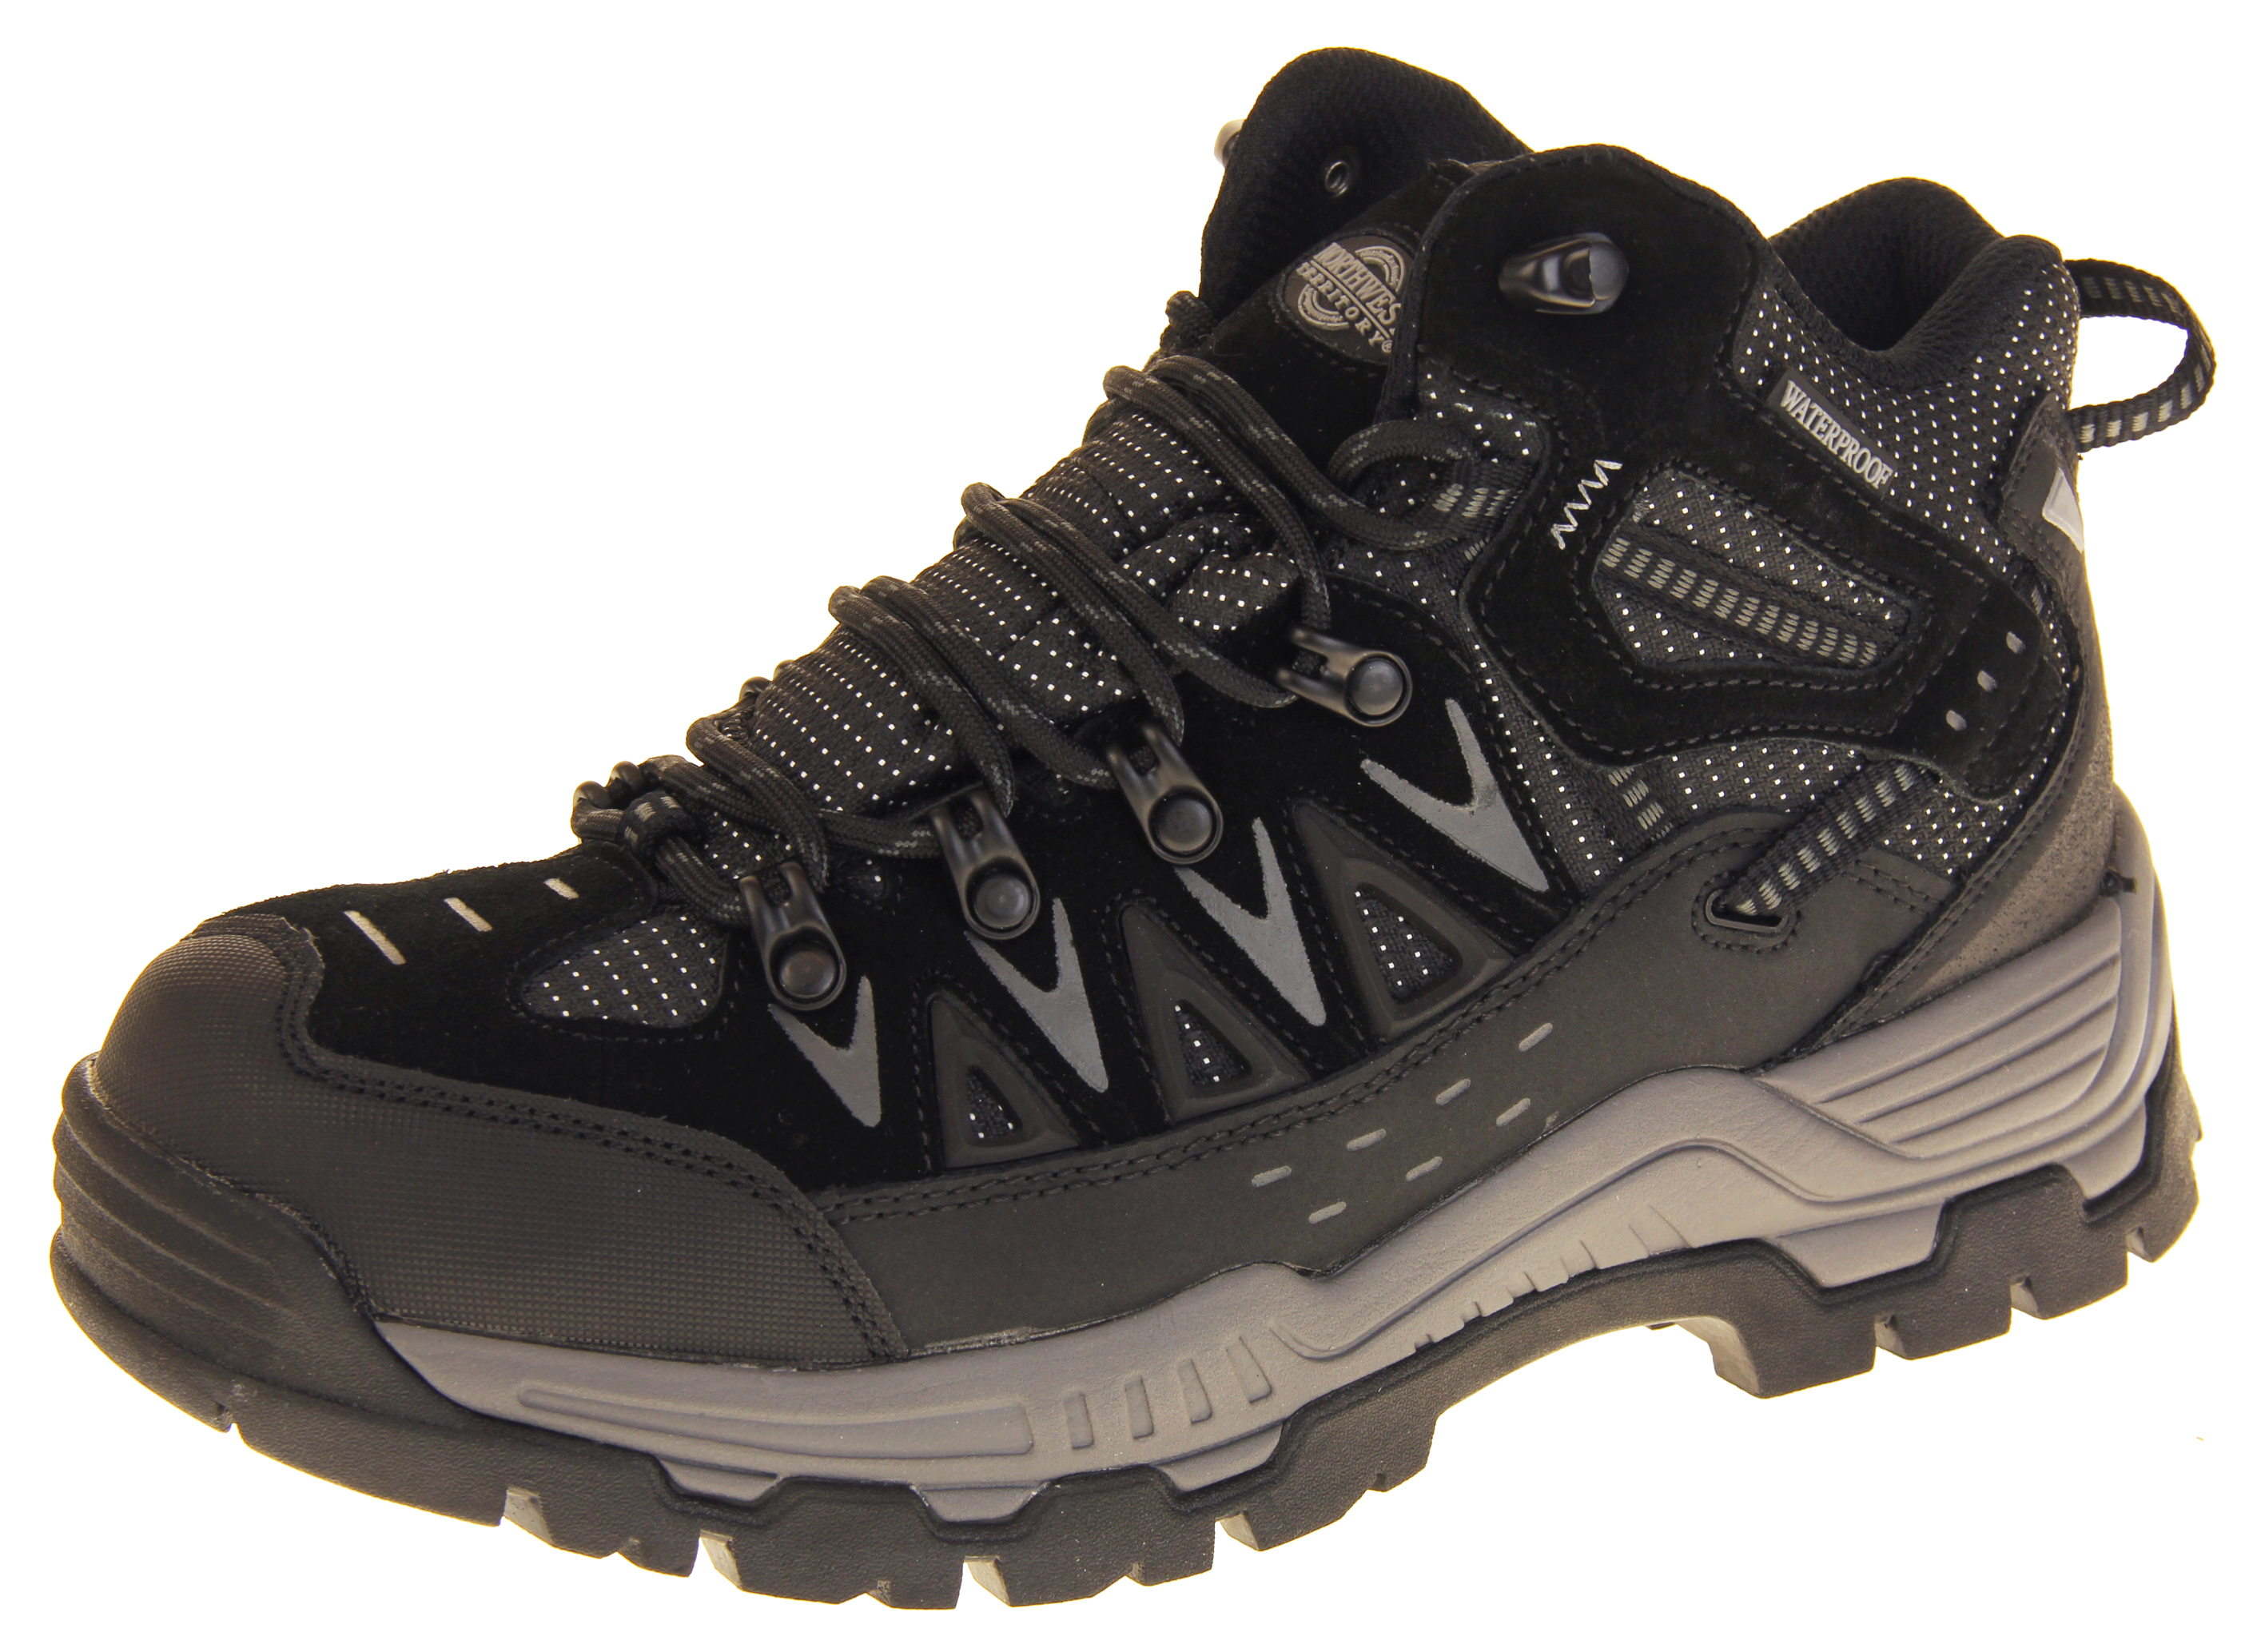 e07f0854306 Mens PIERS Hiking Boots